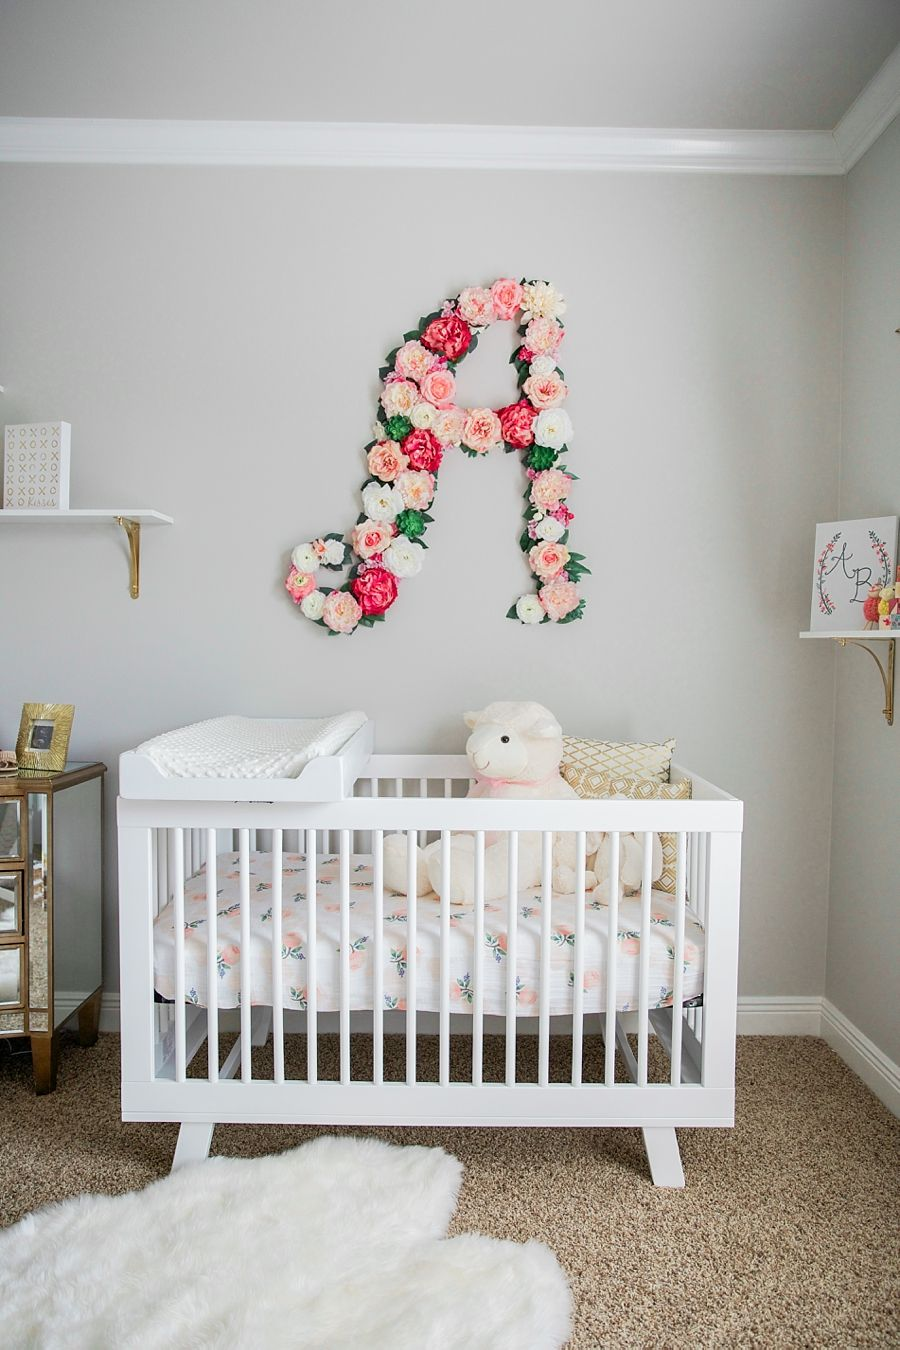 Baby Bedroom Ideas Girl Baby girl nursery with floral wall | Shop. Rent. Consign.  MotherhoodCloset.com Maternity Consignment